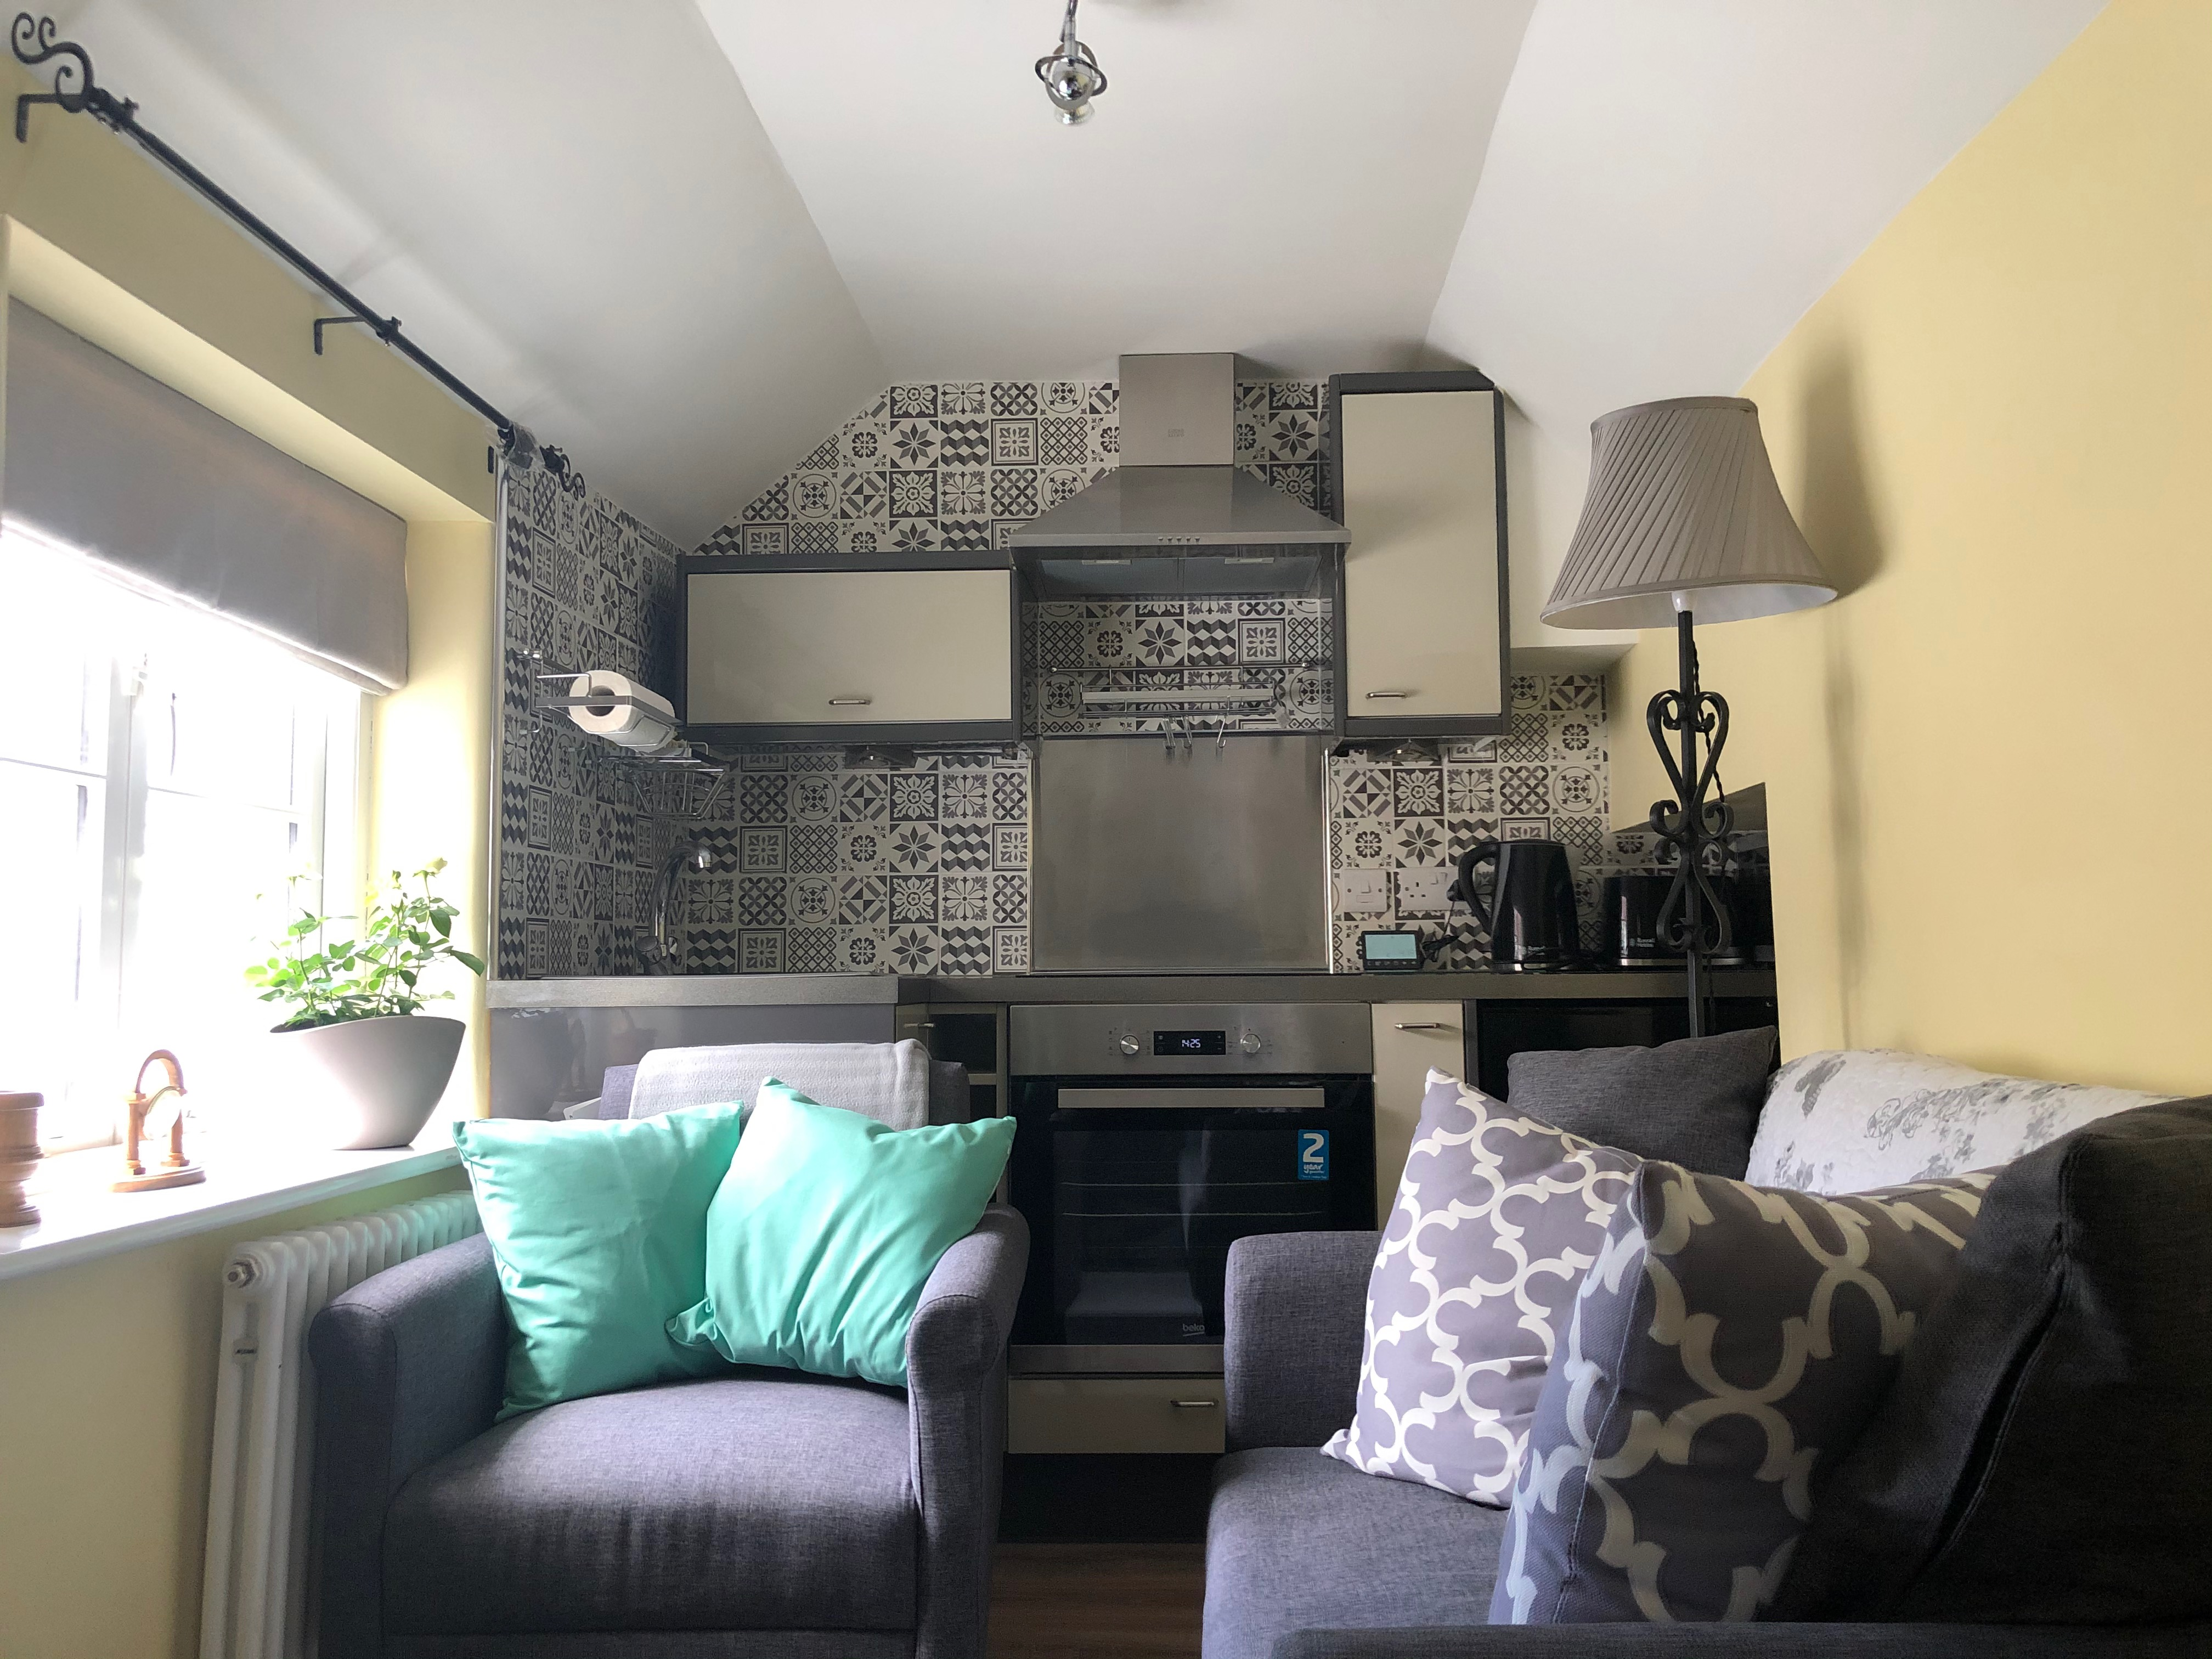 Sitting room / kitchen pic a